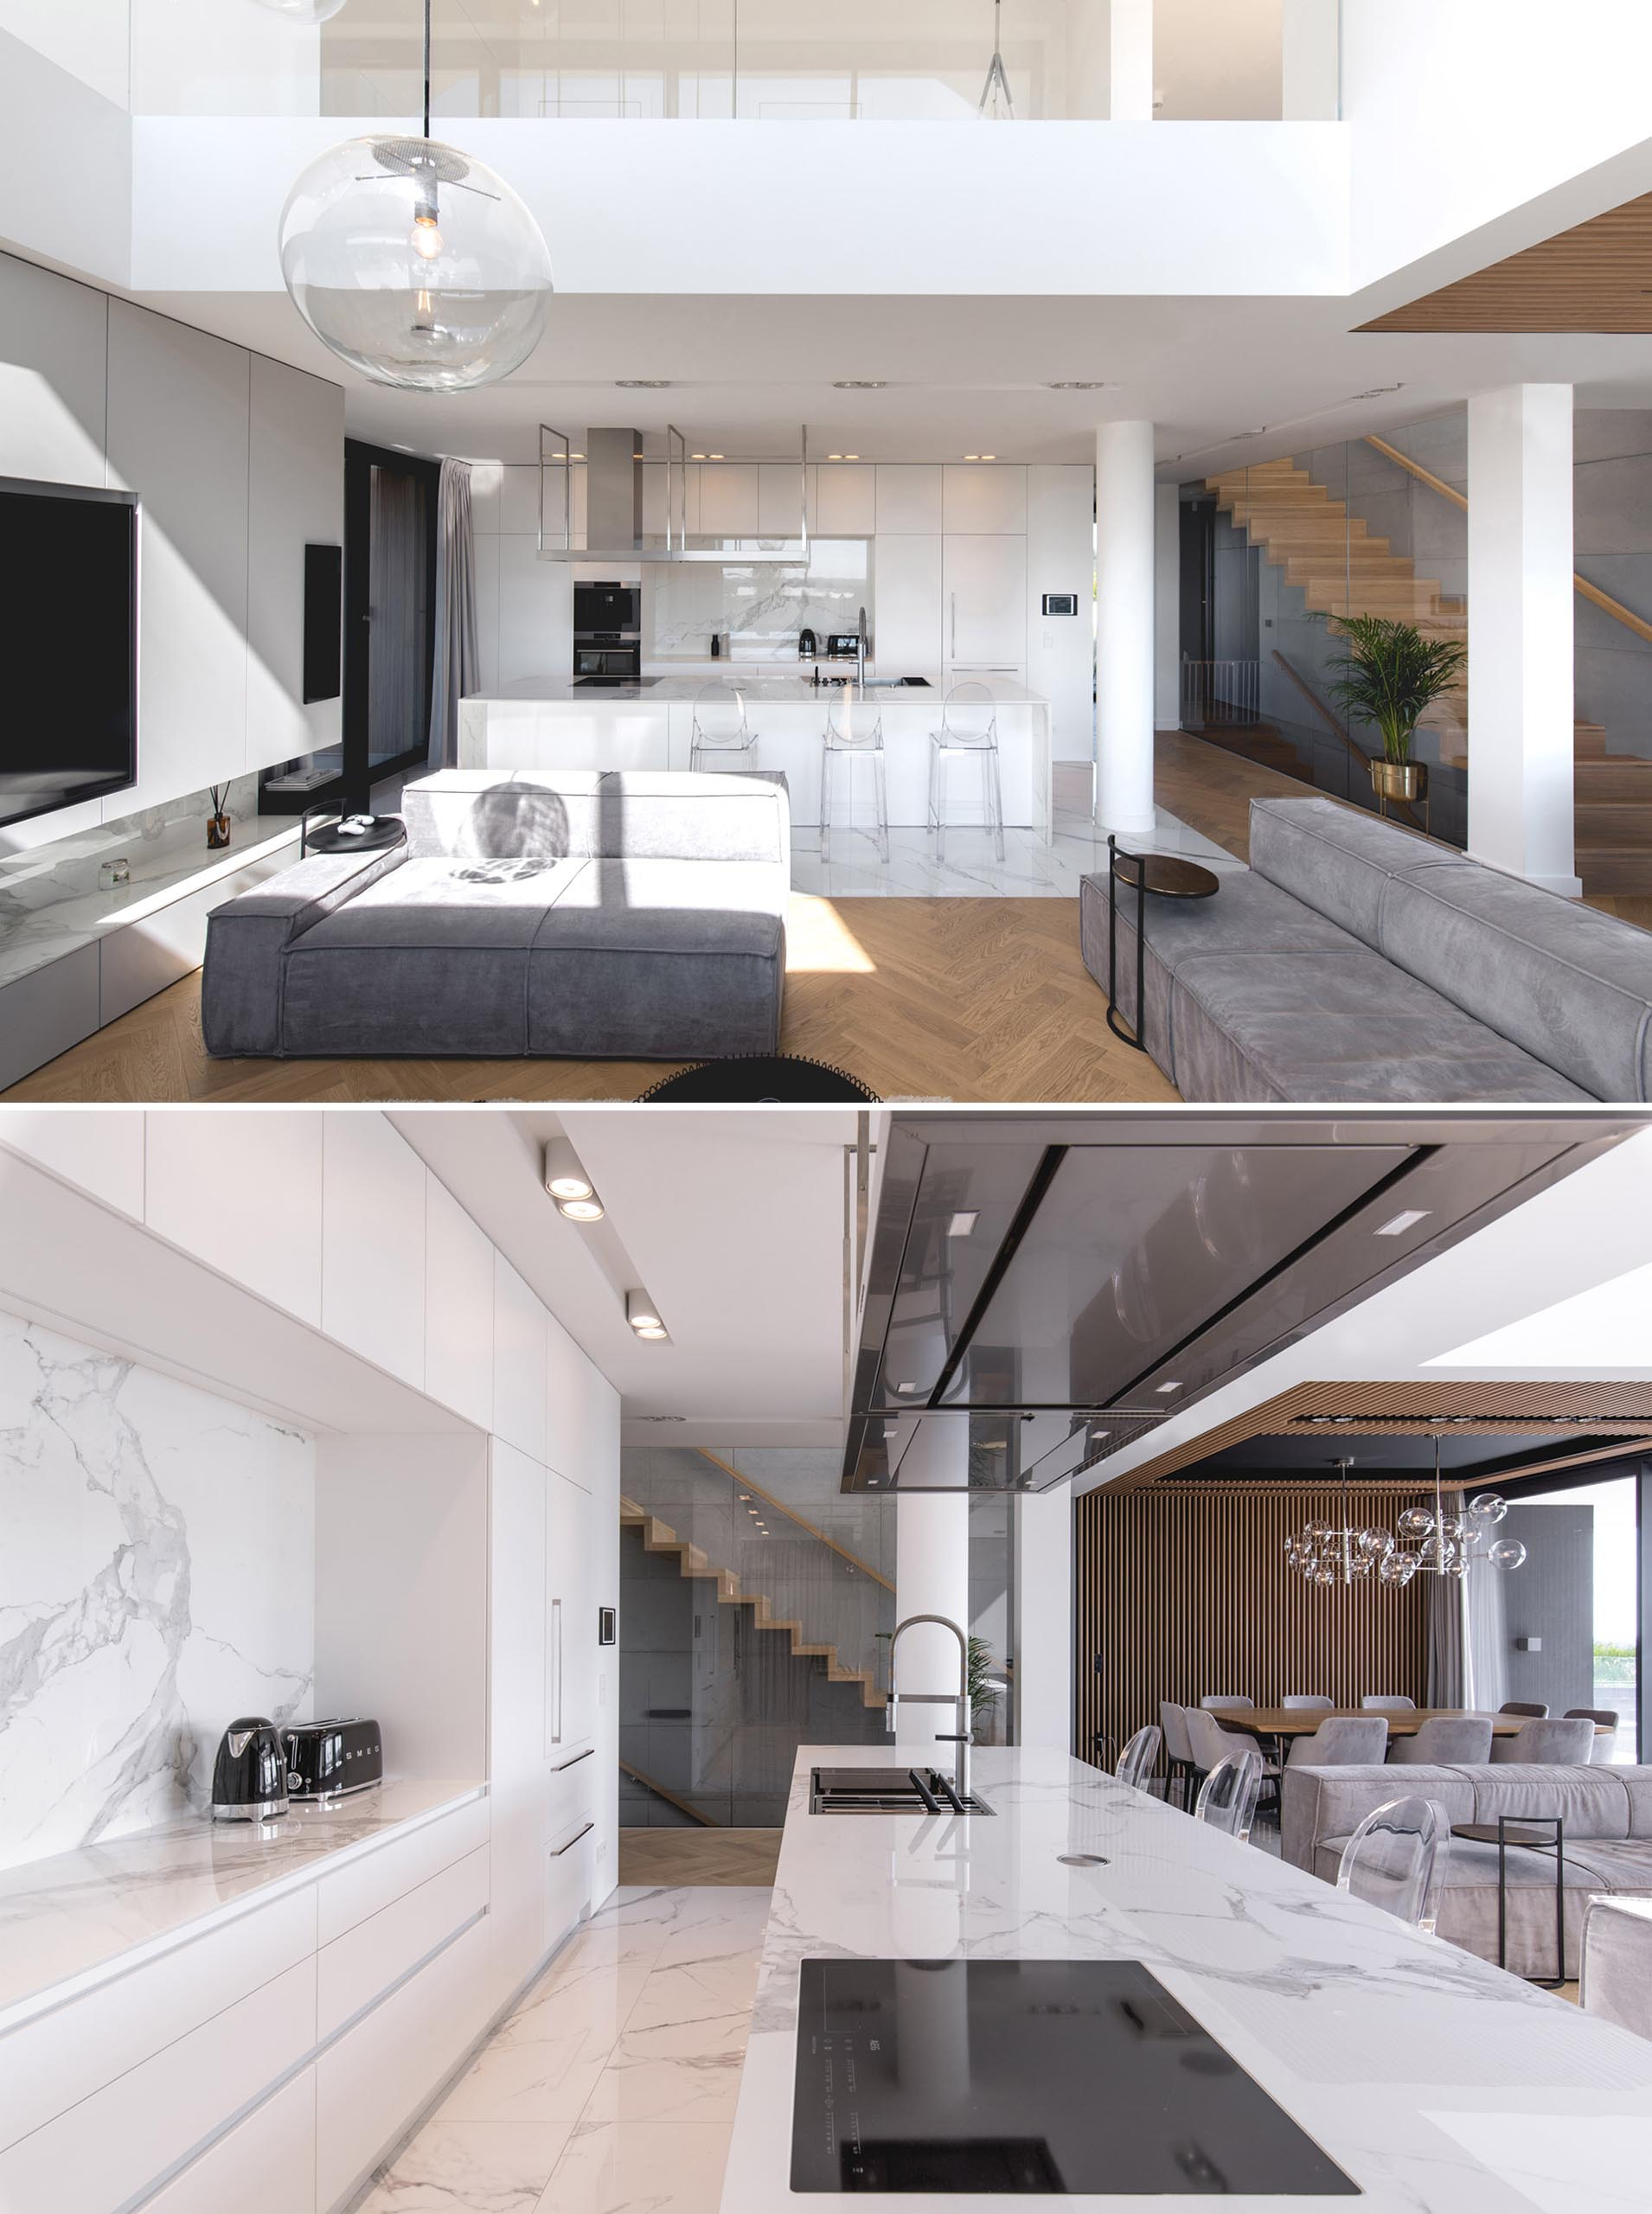 A modern kitchen with minimalist white cabinets that line the wall, and a large island adds extra counter space.